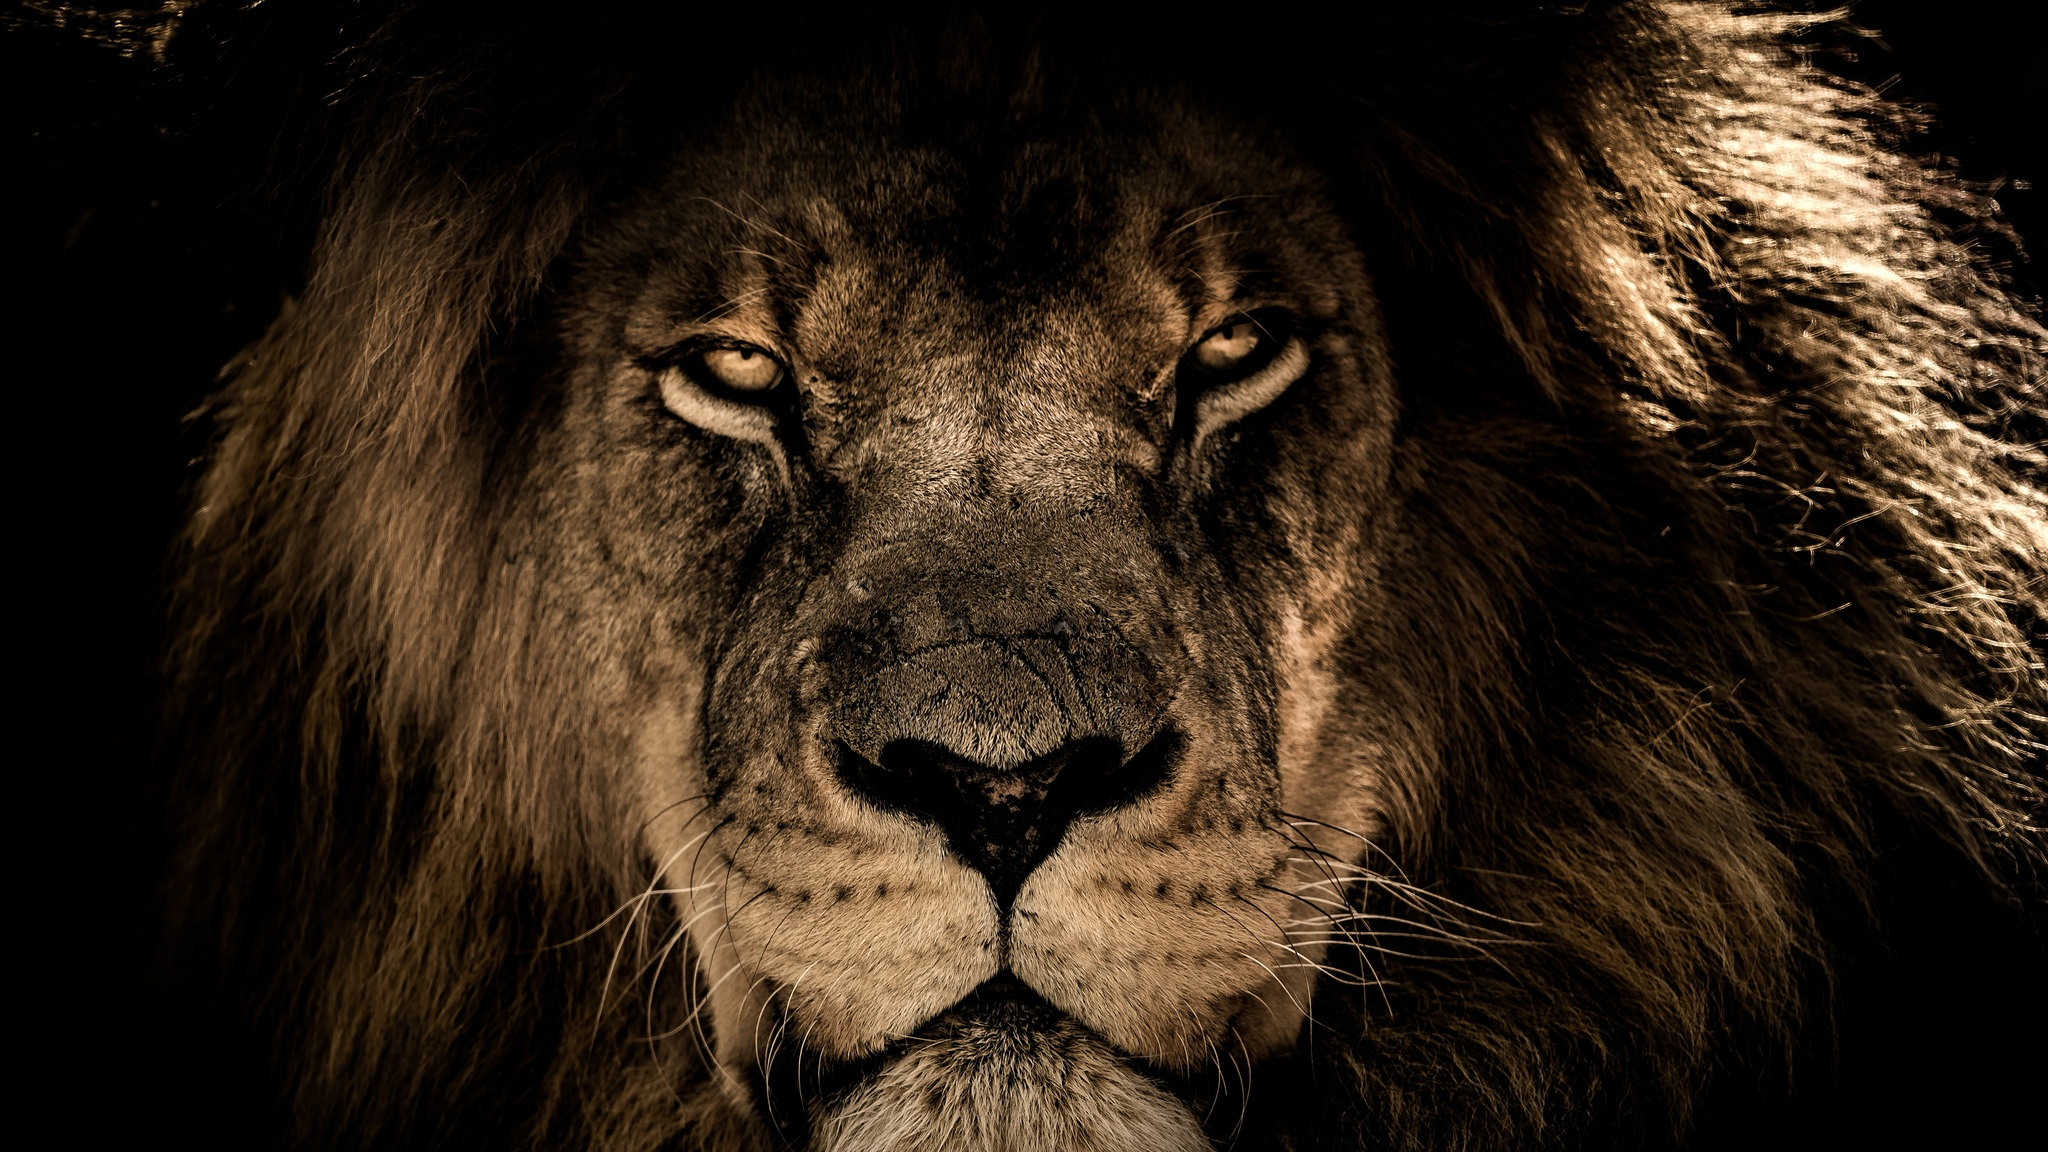 Most Inspiring Wallpaper Logo Lion - african-lion-face-closeup-5k-ap-2048x1152  Perfect Image Reference_366112.jpg